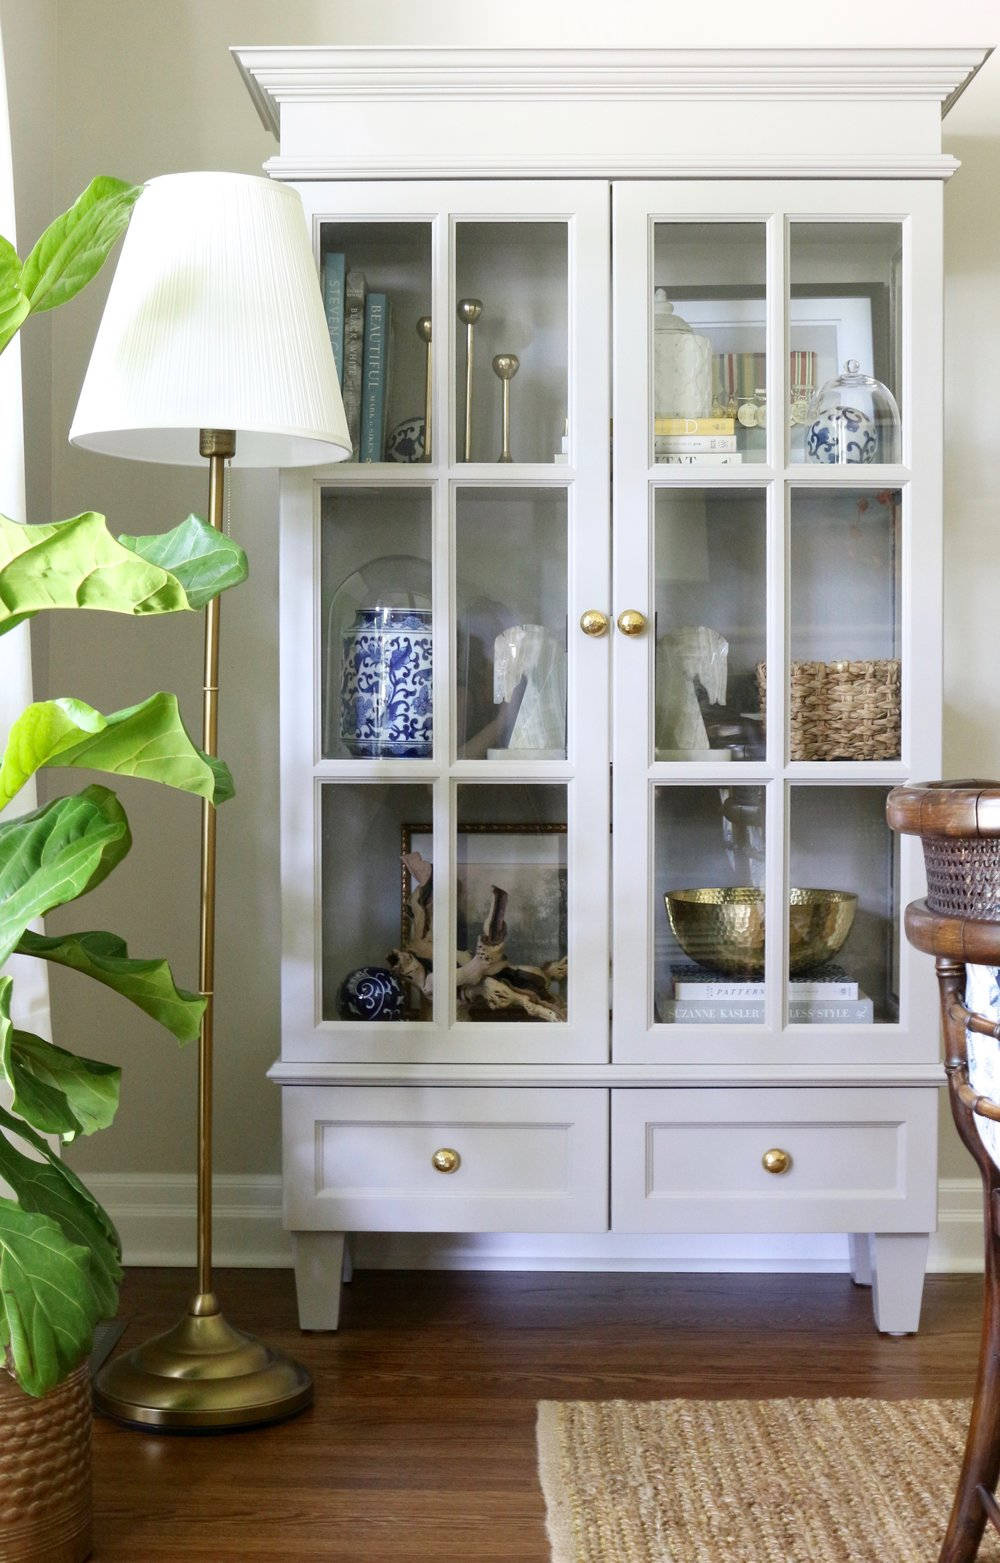 Crate-and-Barrel-inspired-DIY-cabinet.jpg